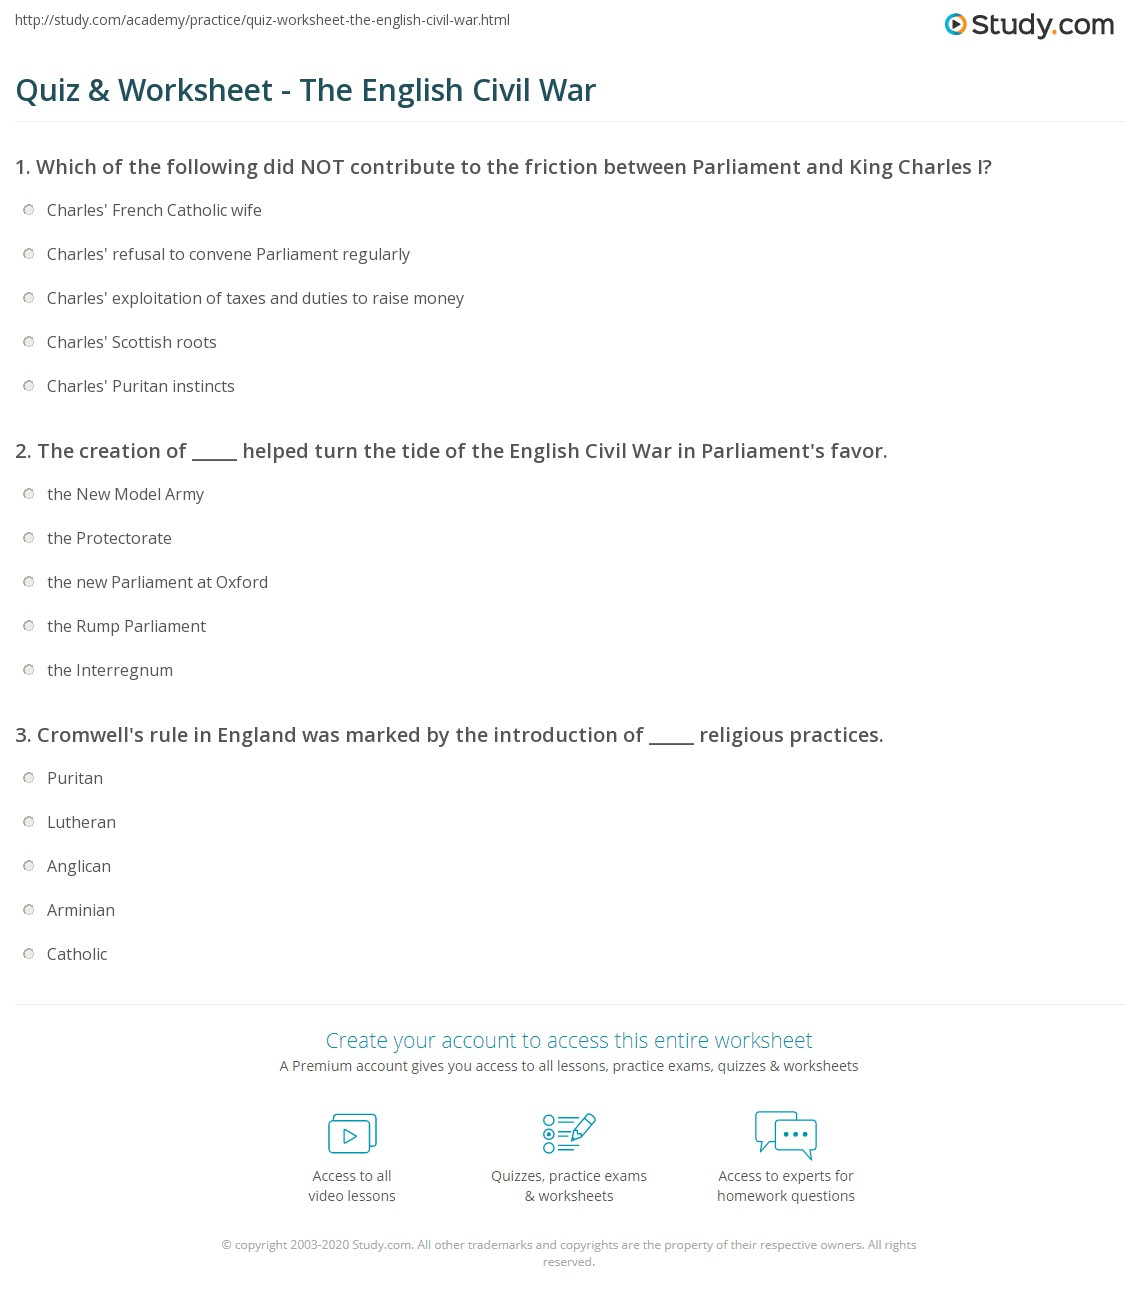 civil war timeline worksheet Termolak – Civil War Timeline Worksheet